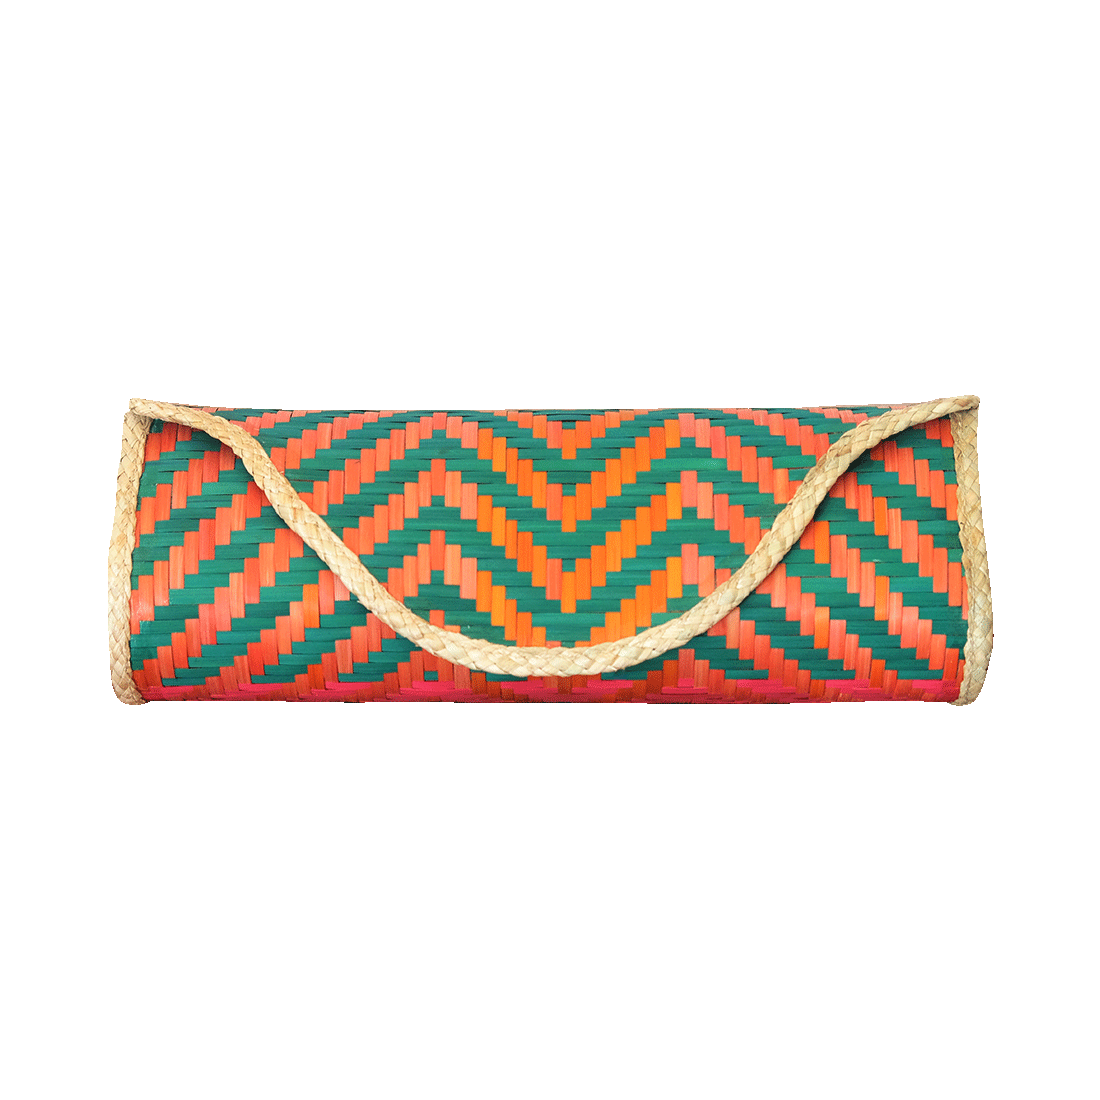 Bamboo Skin Maya Clutch - Green Orange Fuchsia